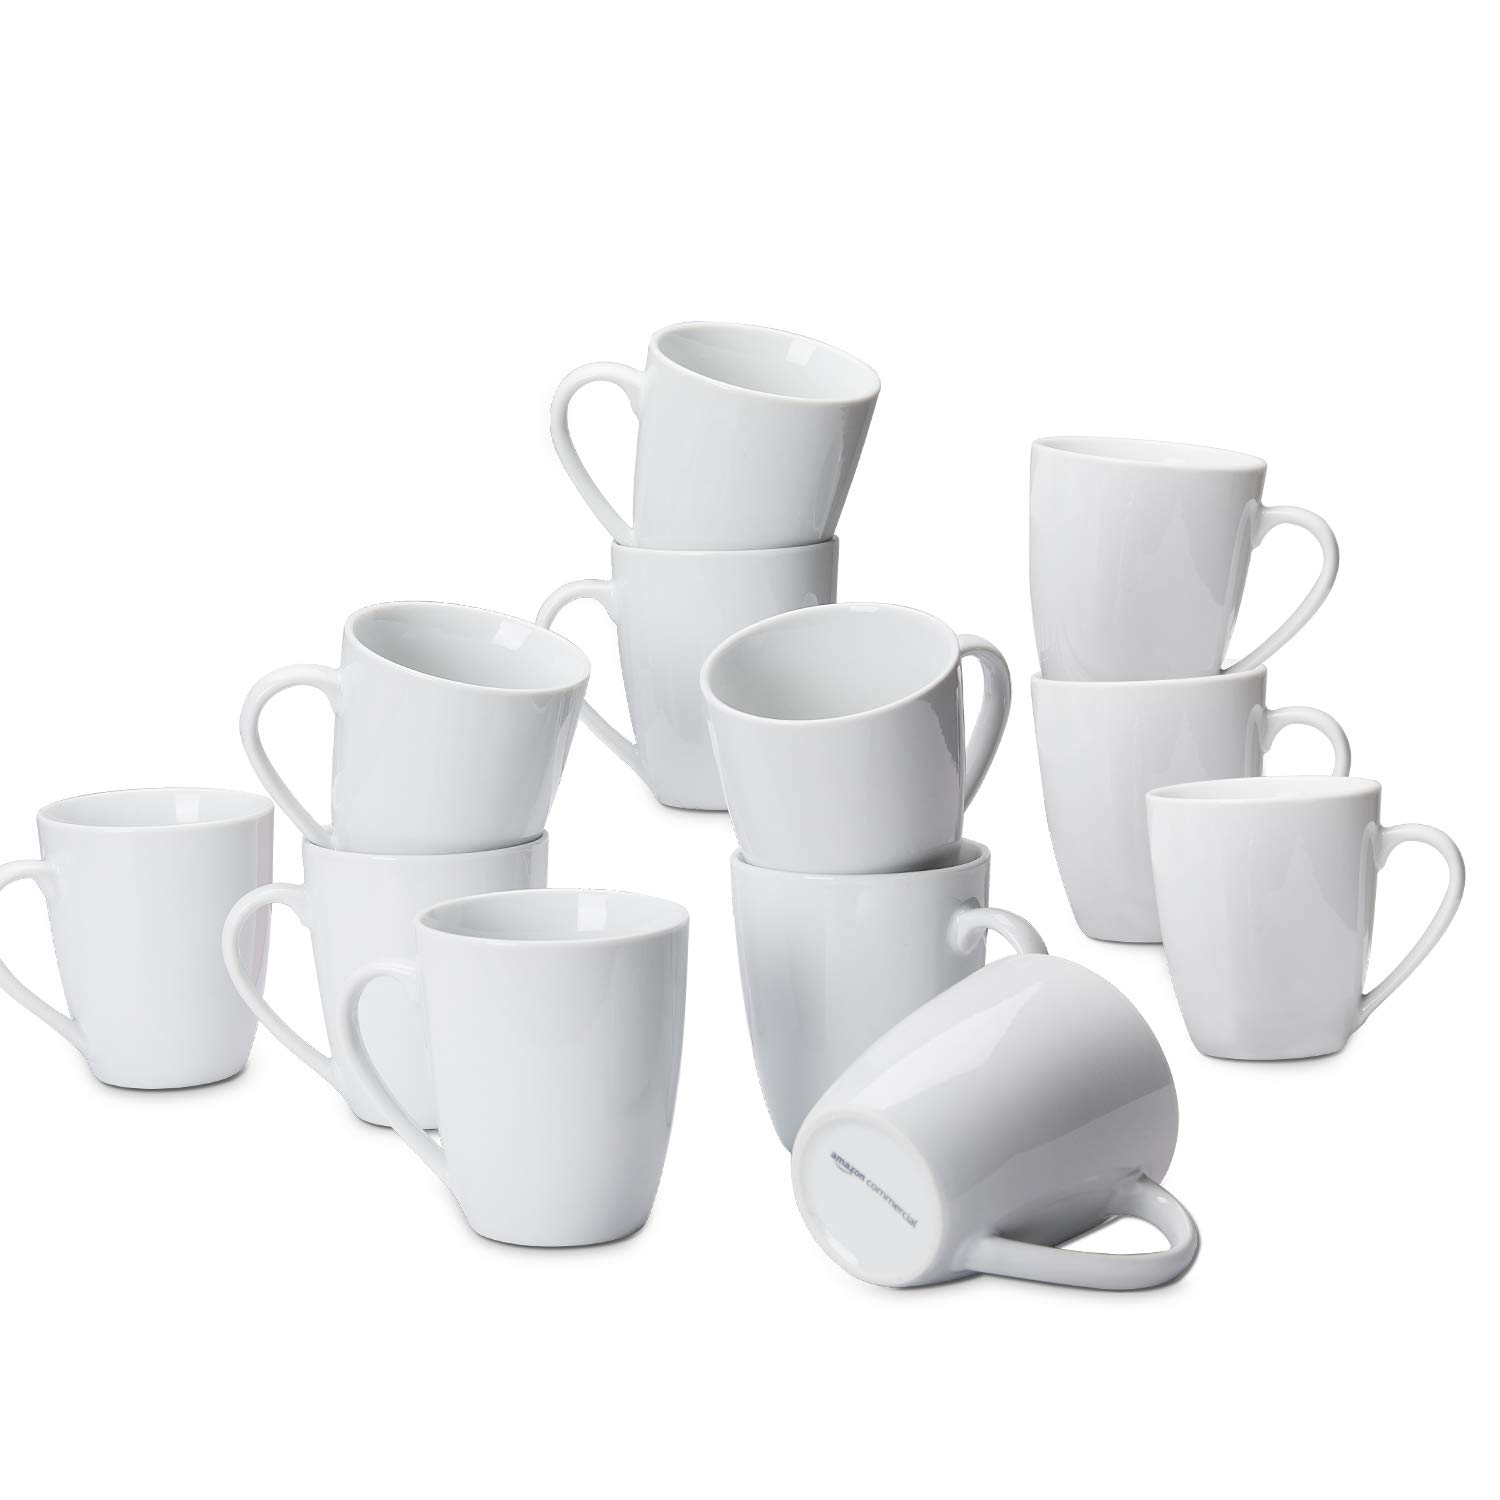 In stock AmazonCommercial 12-Piece Porcelain 12 Ranking TOP14 Oz. Coffee Whit Mug Set